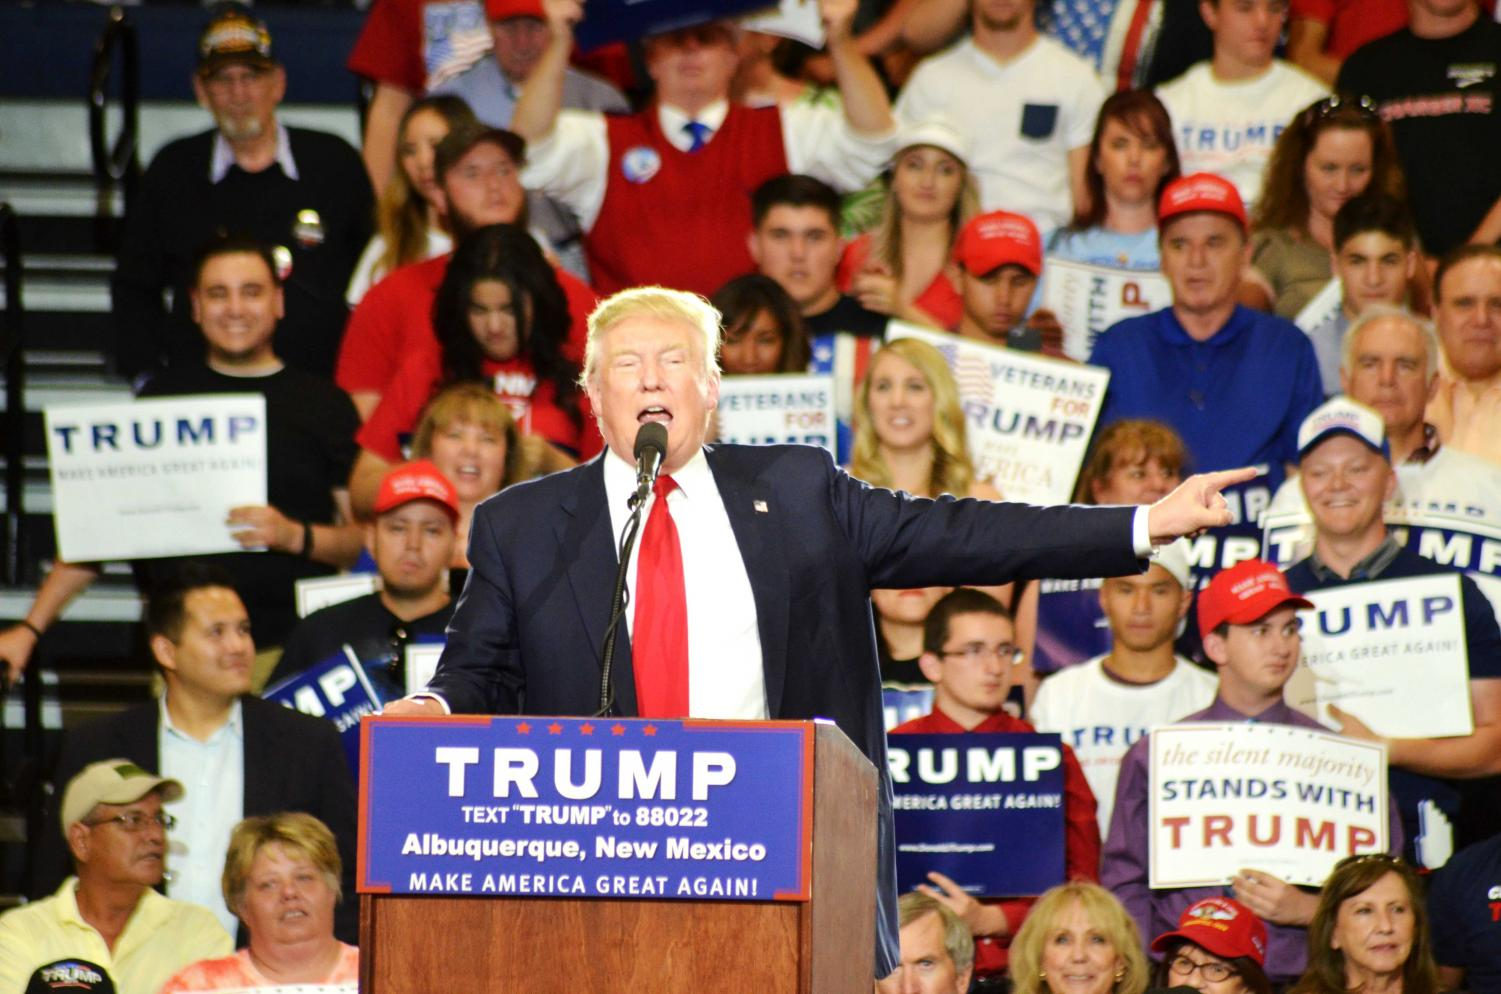 President Donald Trump holds rally in Albuquerque, New Mexico on Tue. May 24.